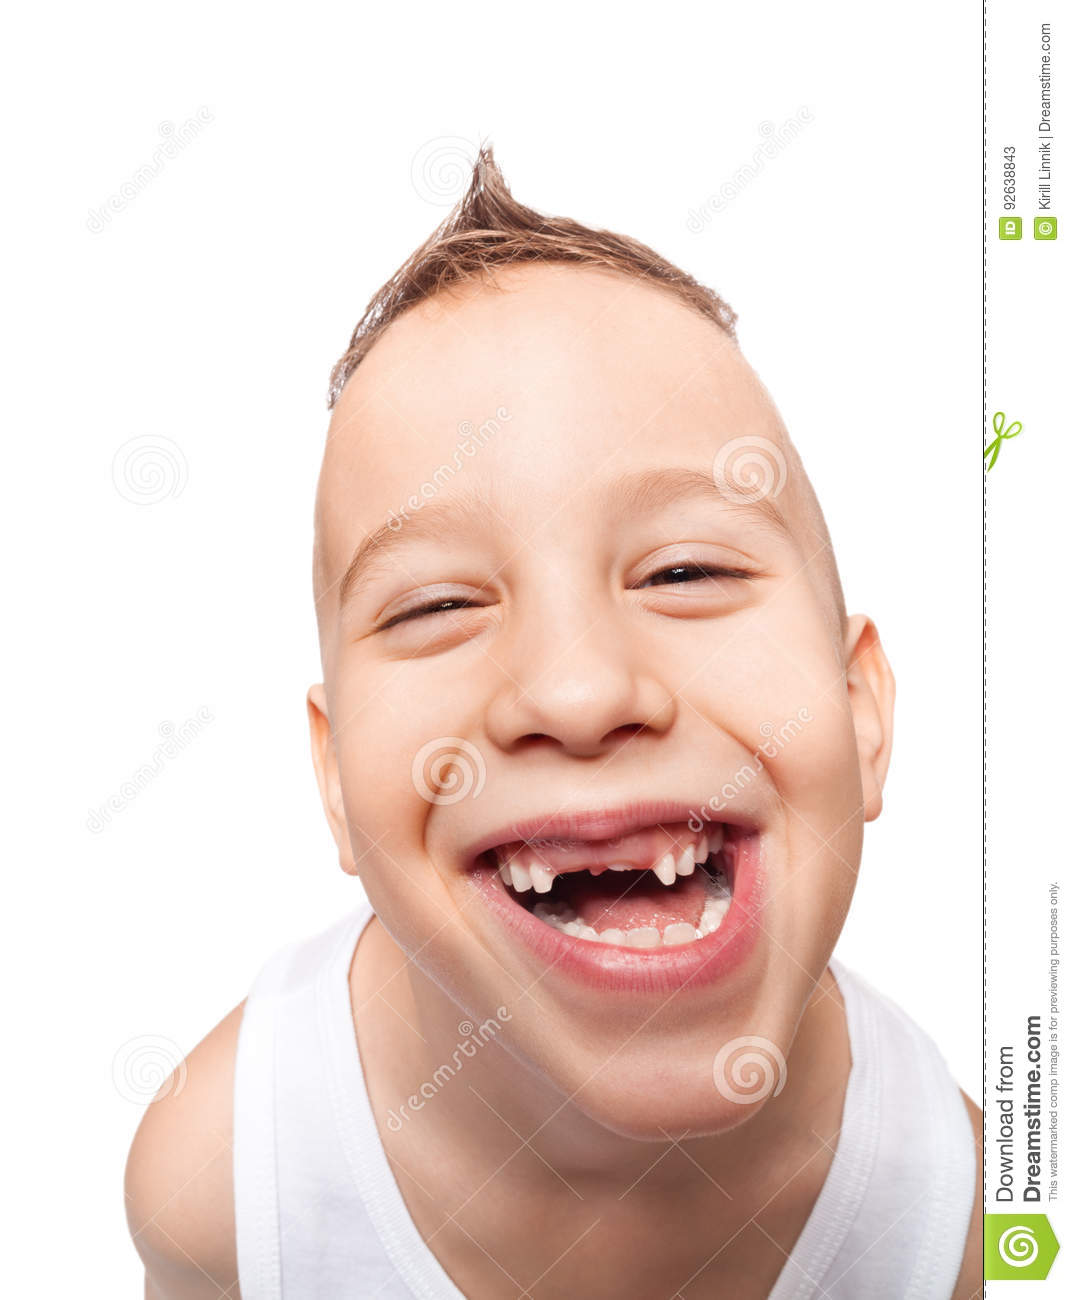 Download Adorable toothless smile stock image. Image of background - 92638843